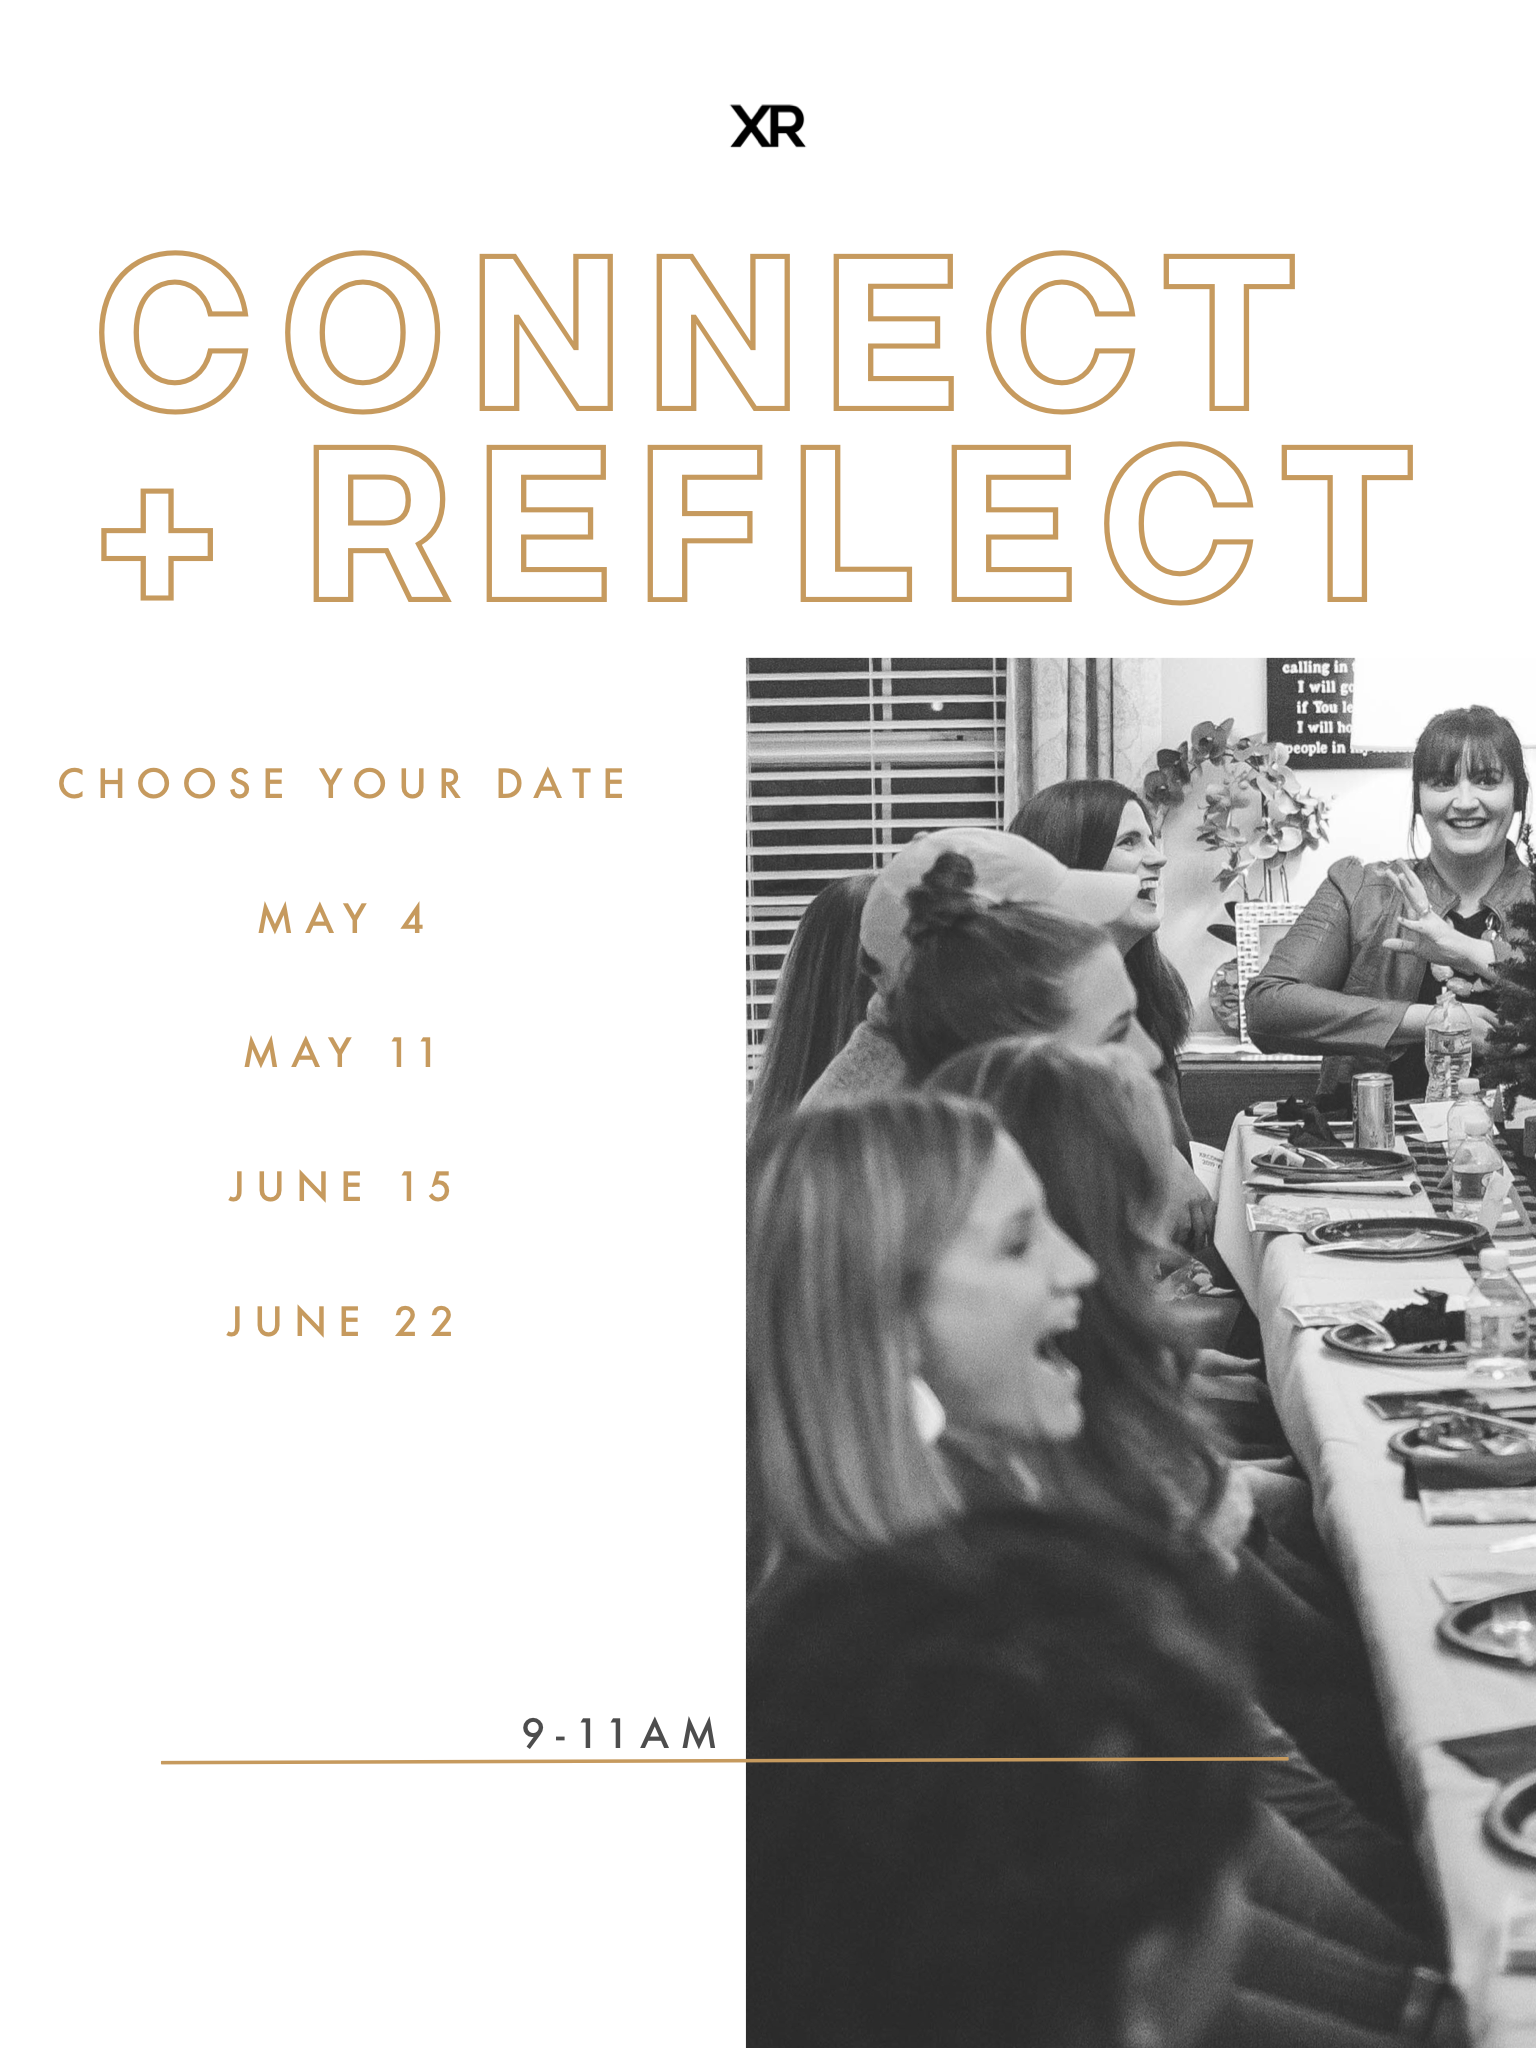 Click on the image to sign up for a seat at one of the four Connect + Reflect summer breakfasts via the Google sheets docs.